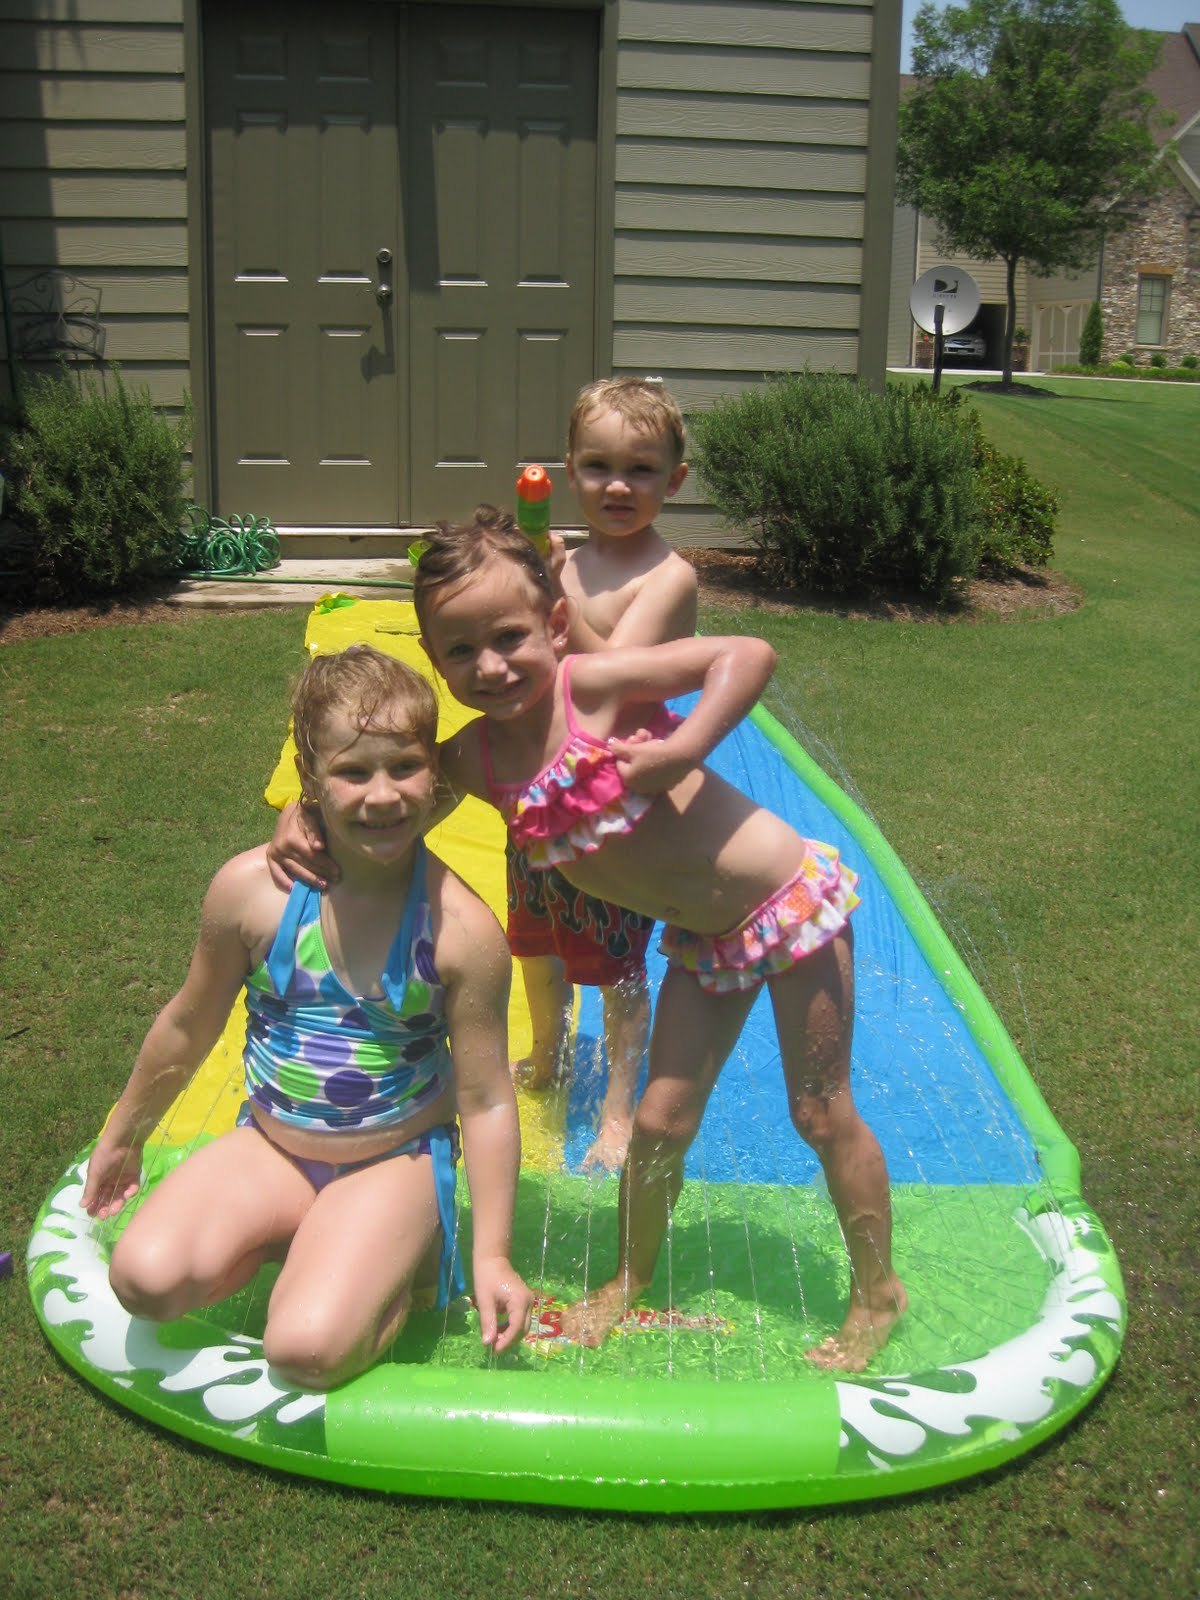 knight and day back yard water fun with brianna michael